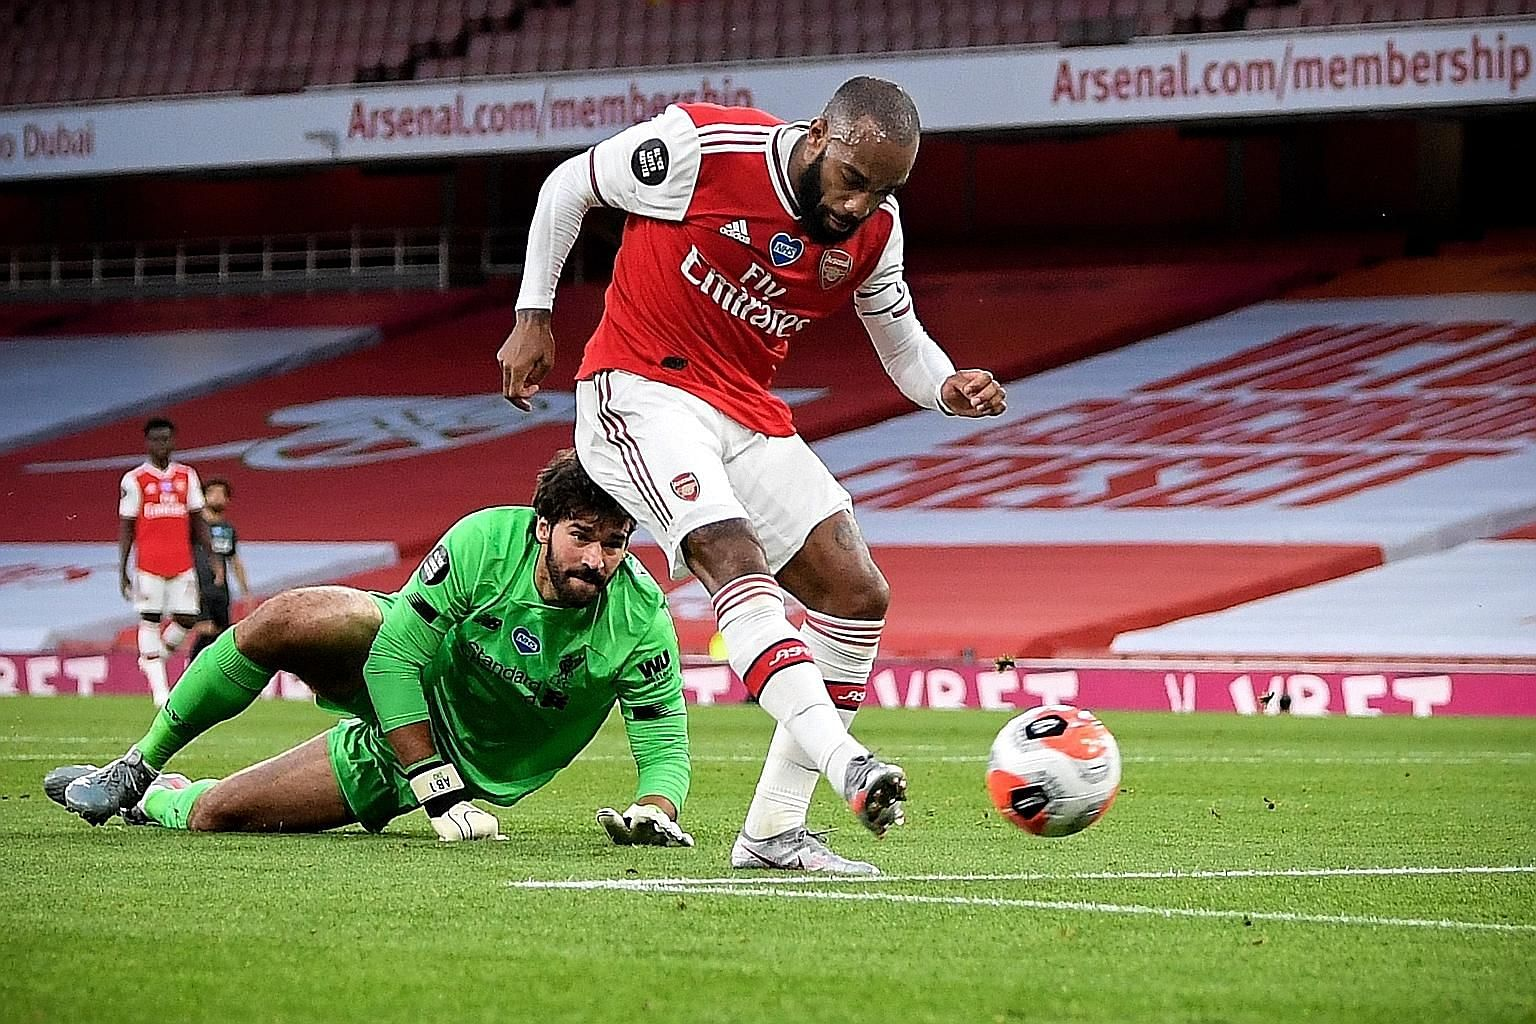 Arsenal forward Alexandre Lacazette beating Liverpool goalkeeper Alisson Becker to score the equaliser in their Premier League match at the Emirates on Wednesday. Arsenal went on to record a 2-1 win and become only the third team to beat the champion